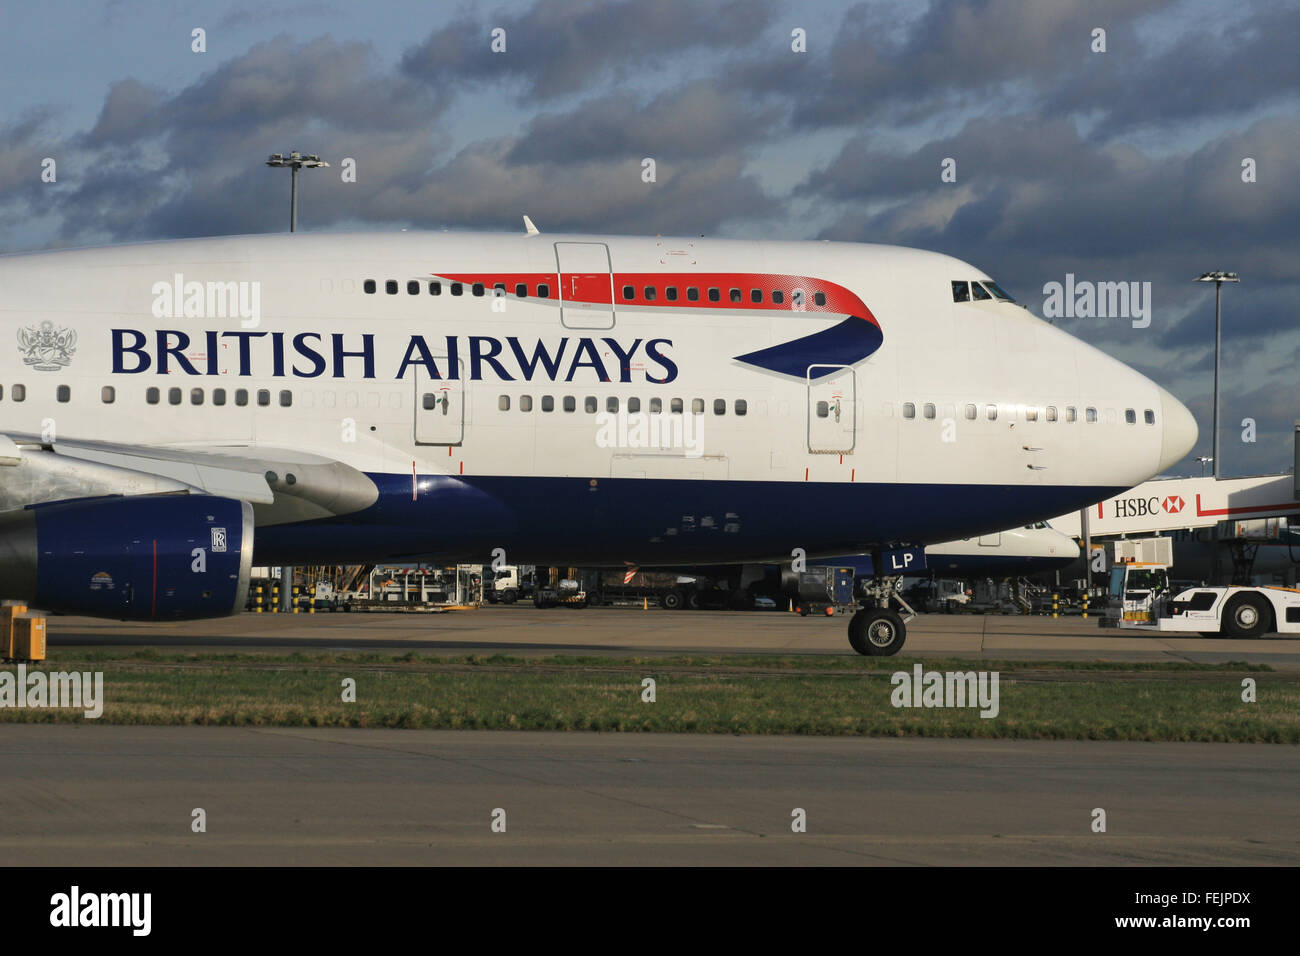 BRITISH AIRWAYS BOEING 747 - Stock Image